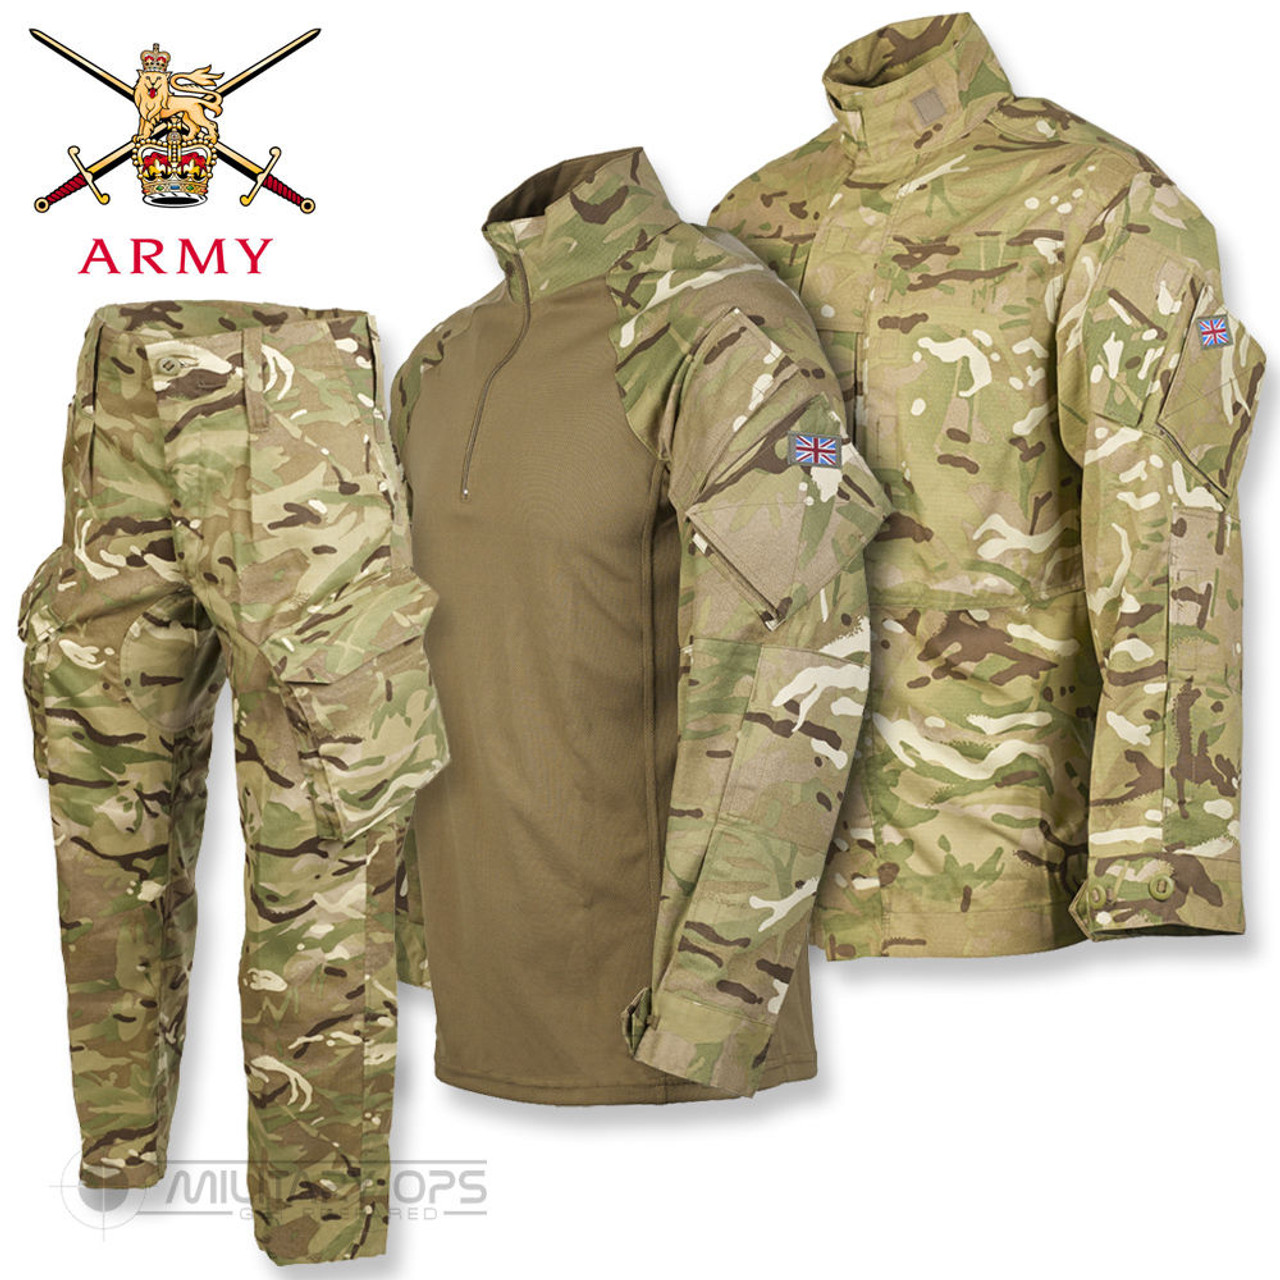 BRITISH ARMY MTP SHIRT PCS ISSUED SURPLUS LIGHTWEIGHT JACKET AIRSOFT CADET